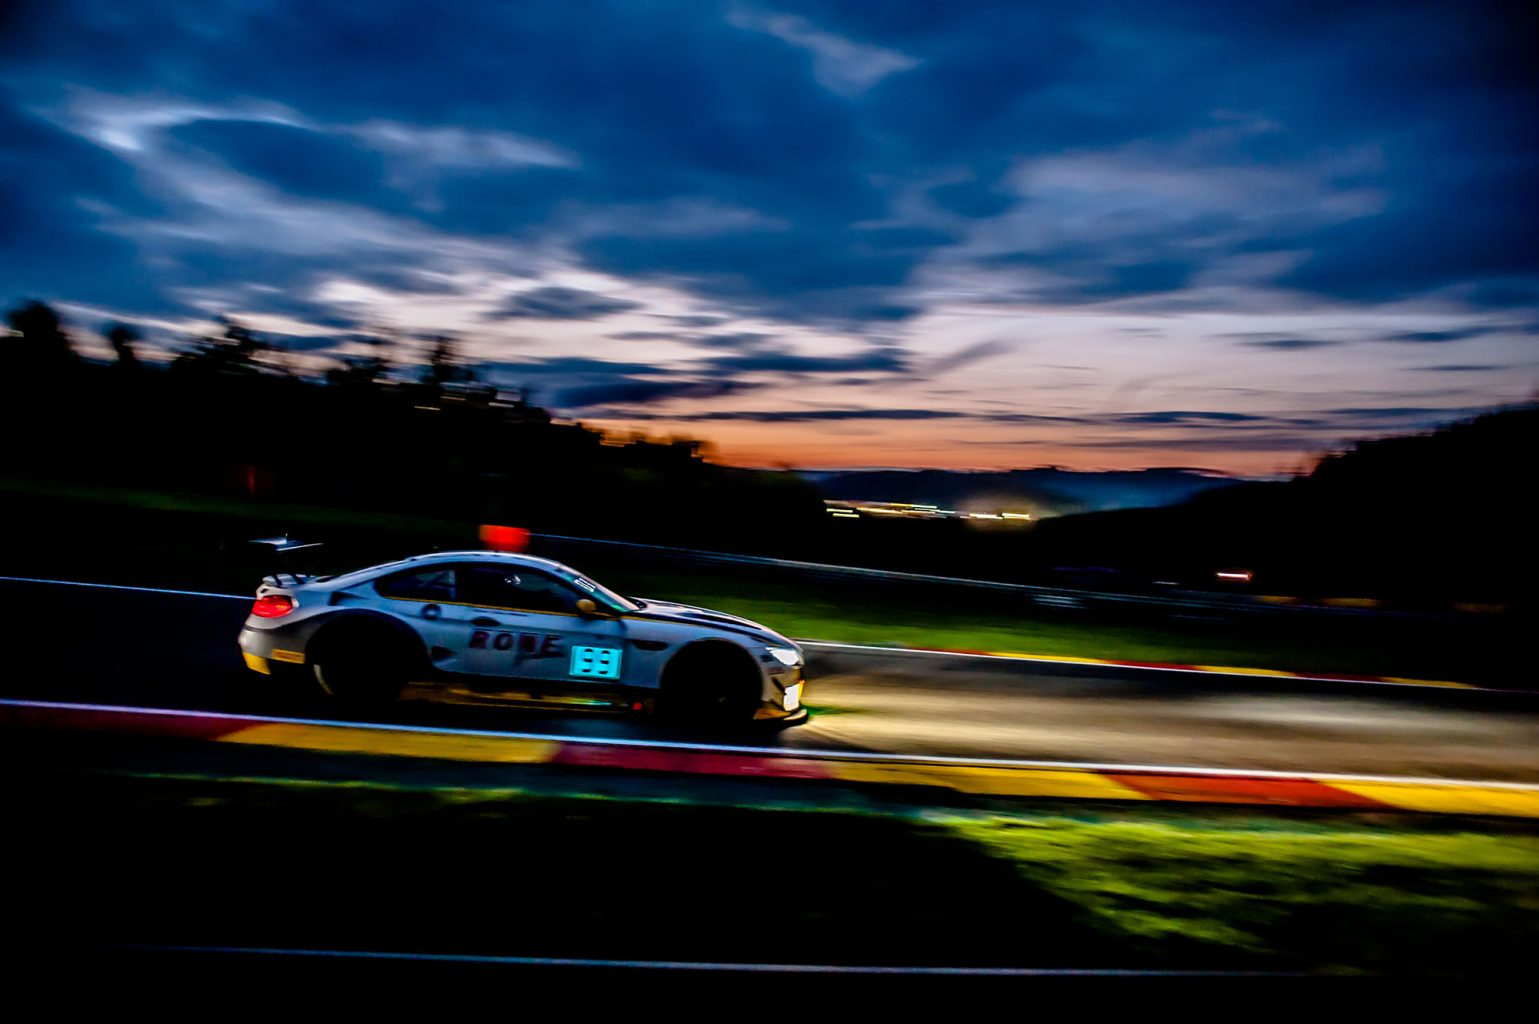 28.07.2016 to 31.07.2016, 2016 Blancpain GT Series Endurance Cup, Total 24 Hours of Spa, Spa Francorchamps, Spa (BEL). Alexander Sims (GBR), Phillipp Eng (AUT), Maxime Martin (BEL), No 99, Rowe Racing, BMW M6 GT3.